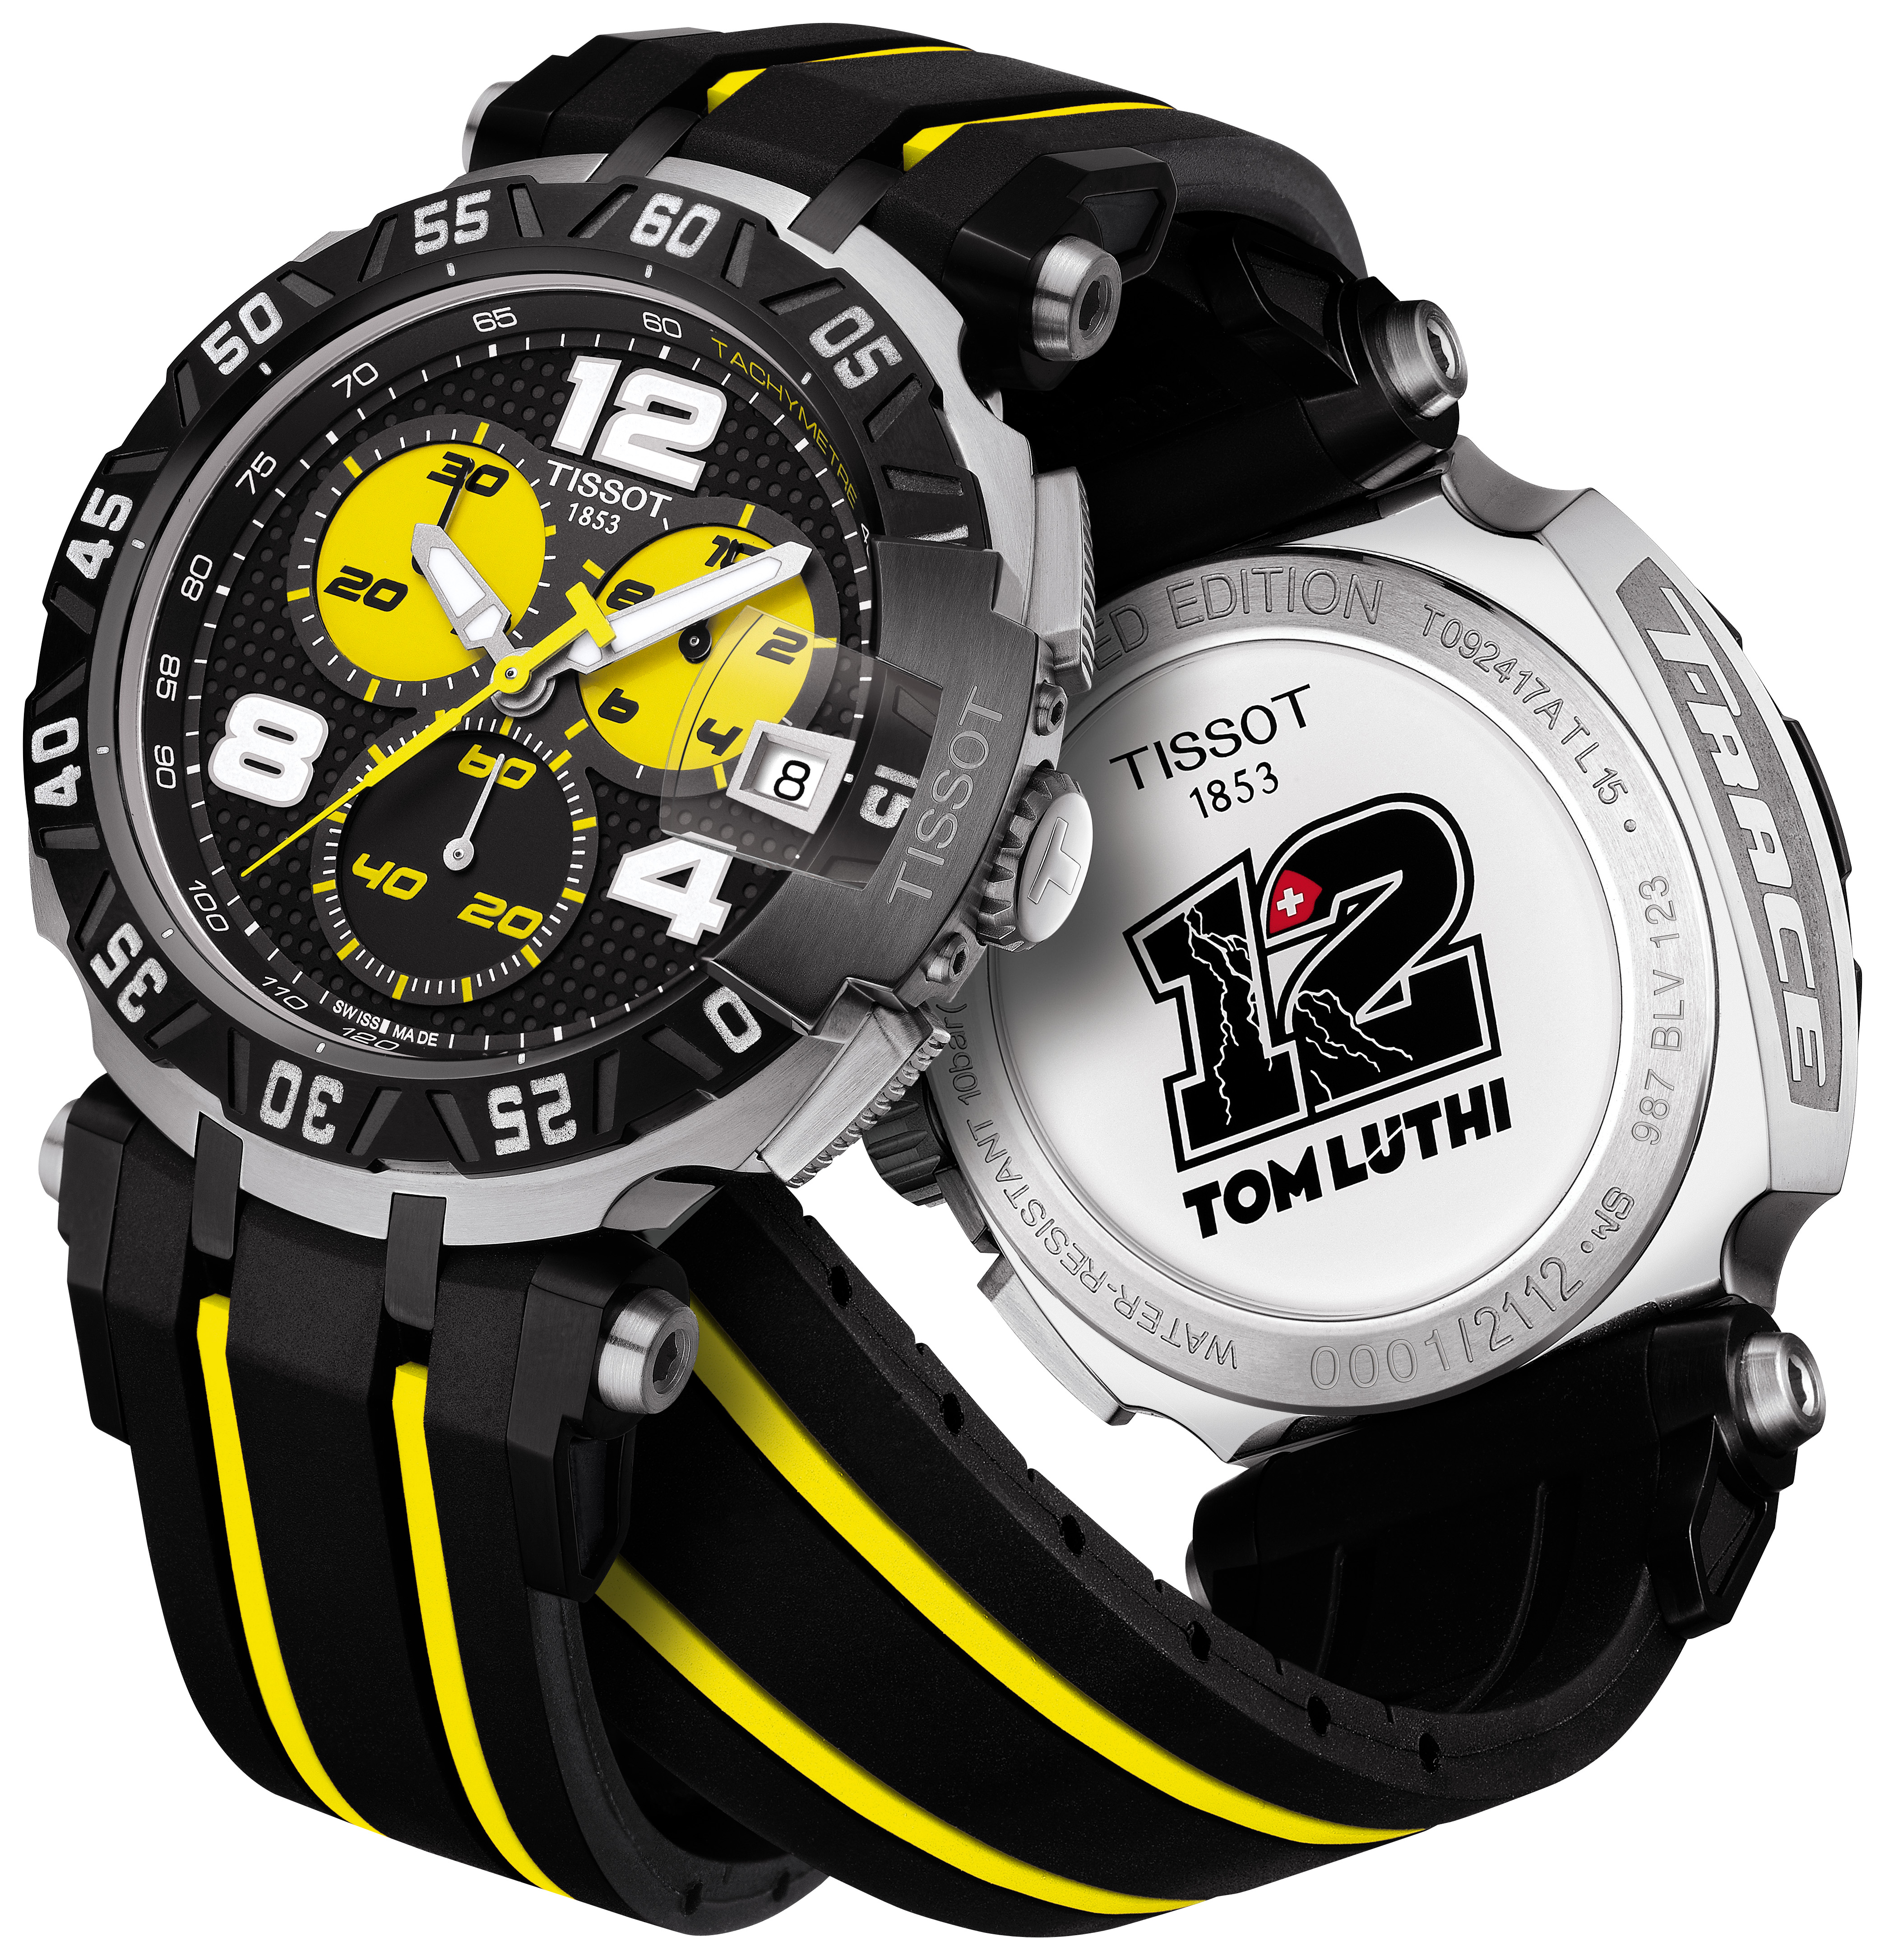 Tissot 2010 t-race thomas lüthi limited edition | watchalive.